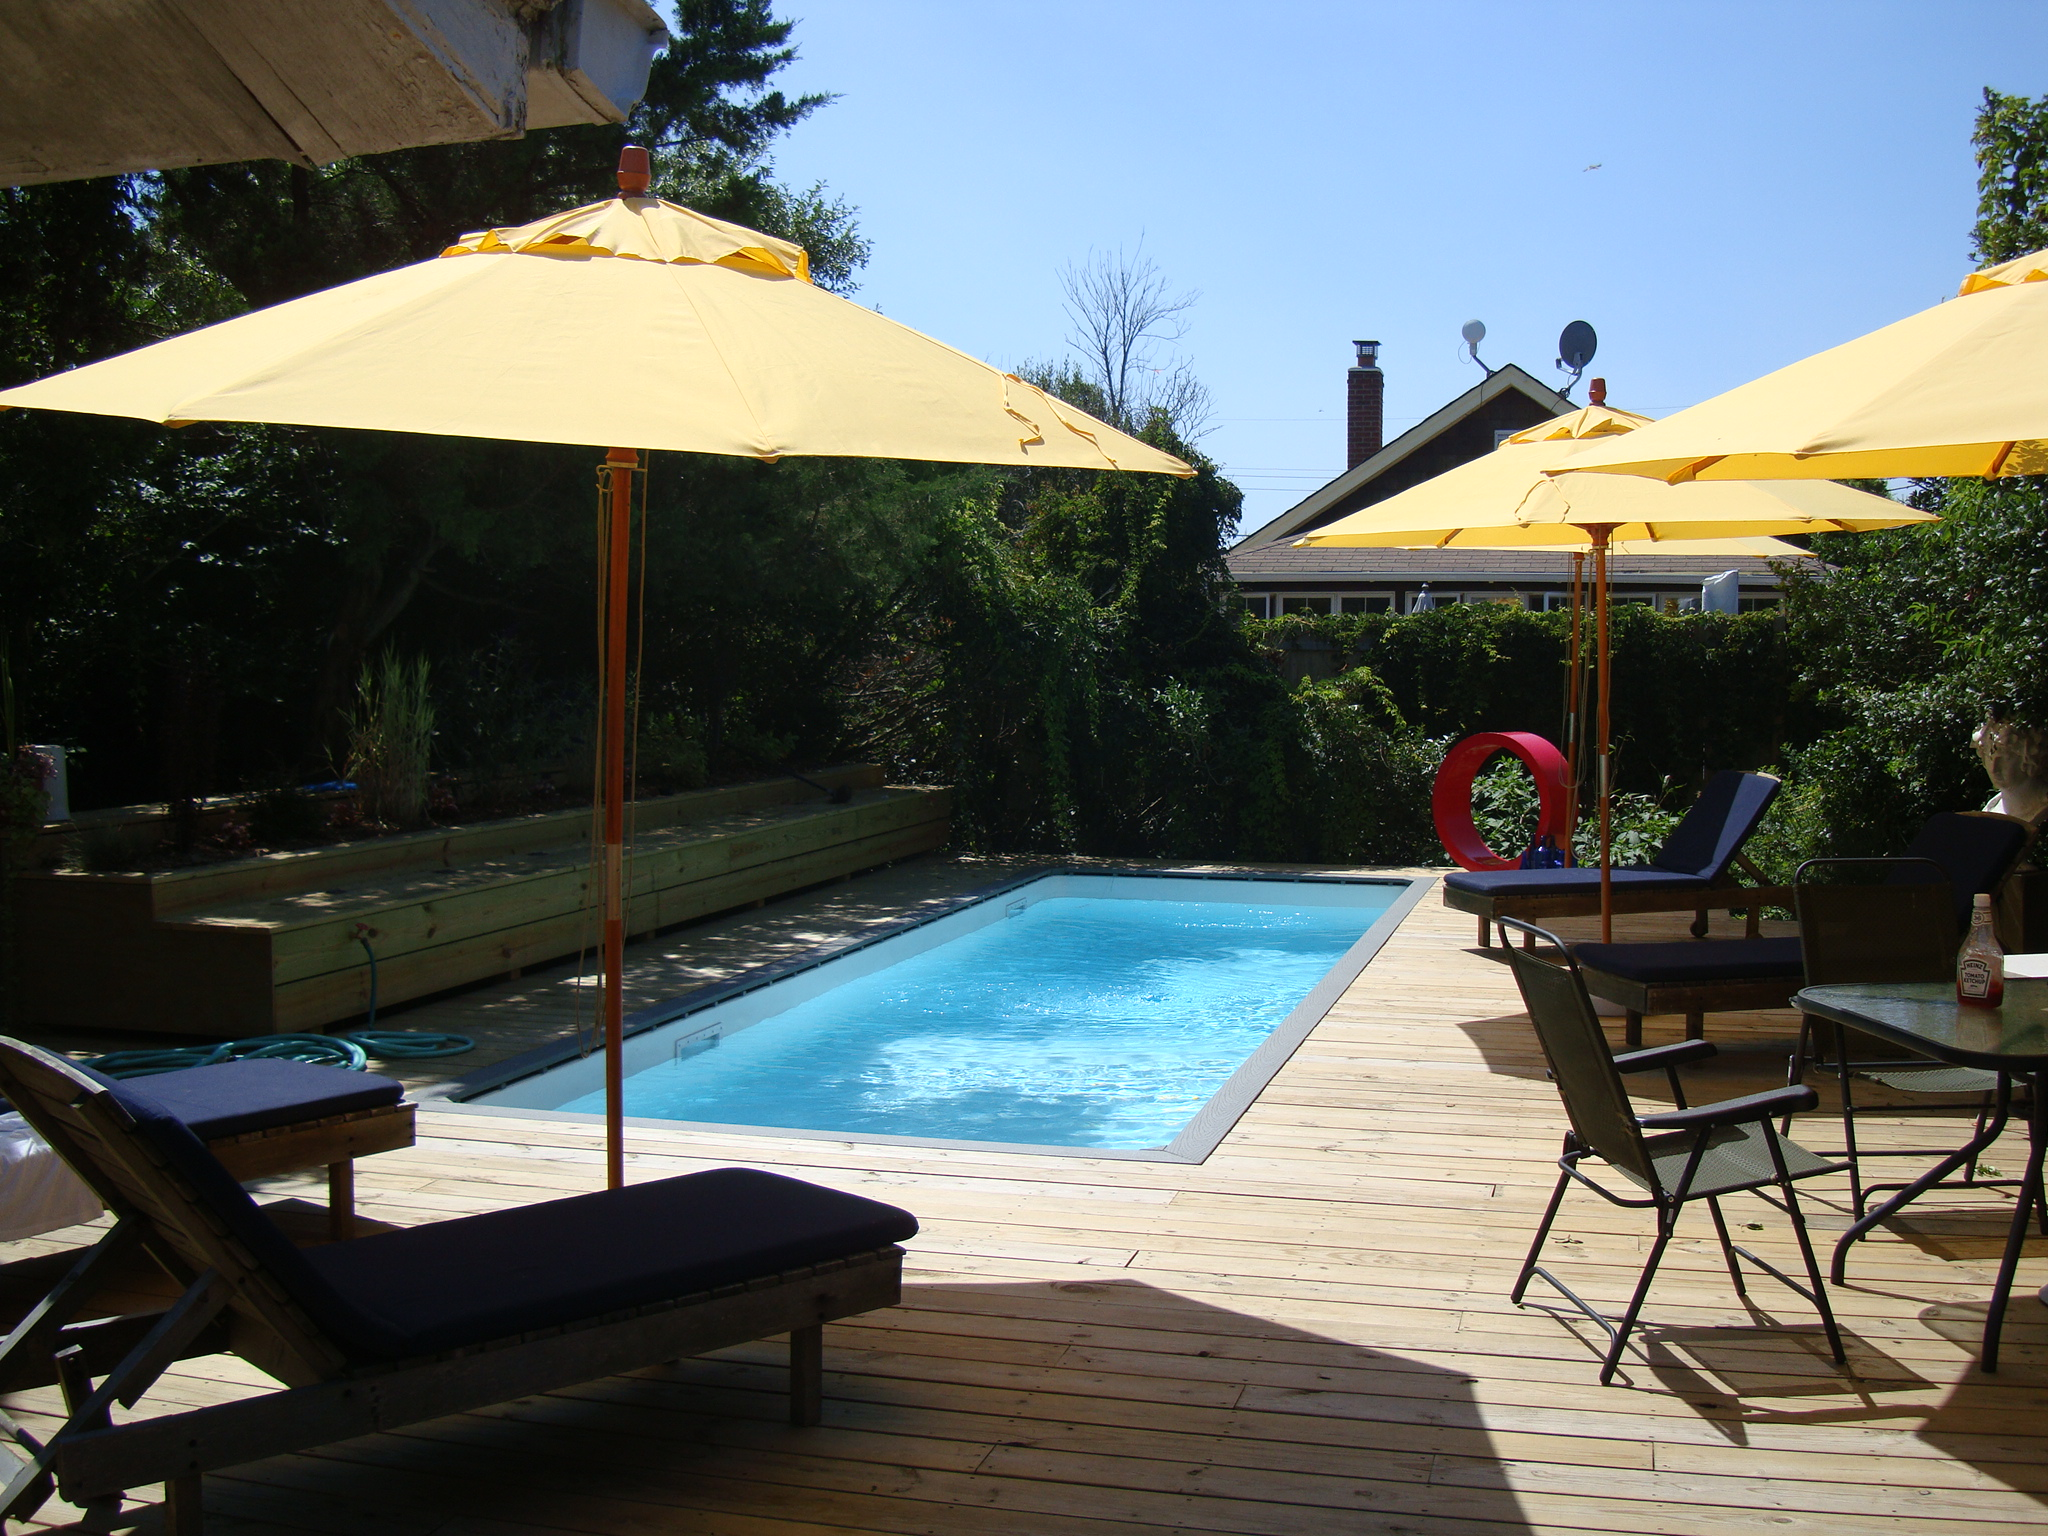 Real Estate Beach House Vacation Rentals And Sales